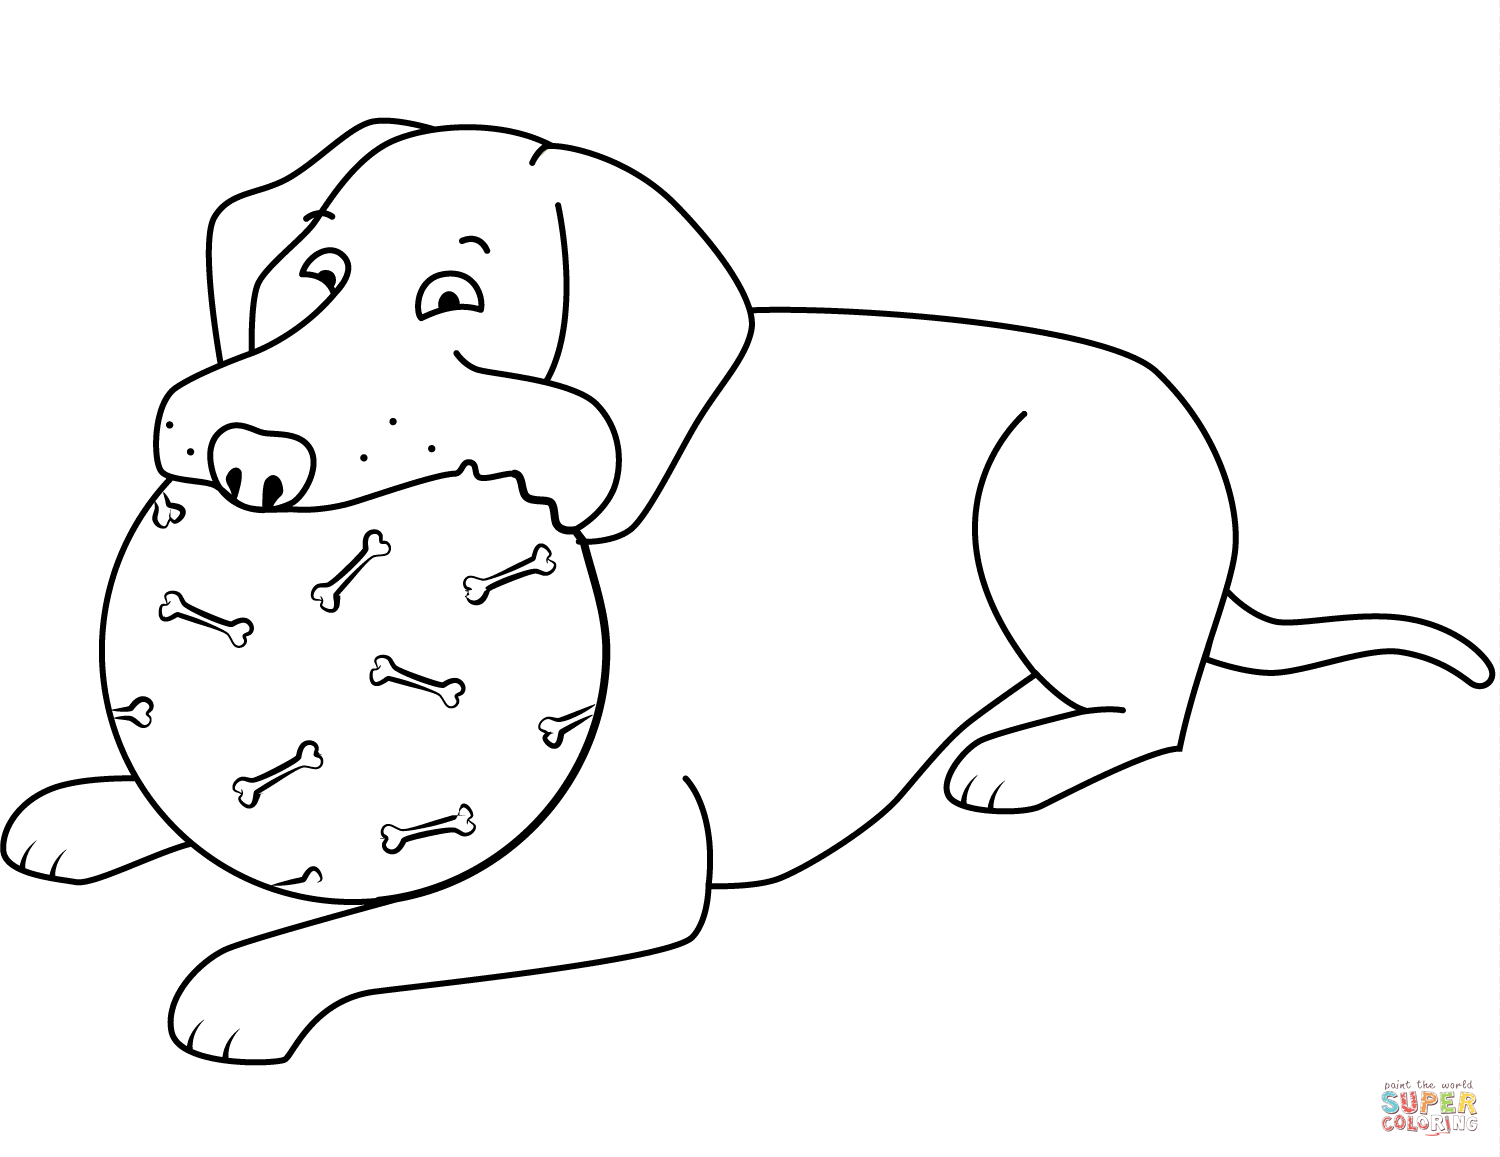 Funny Labrador Retriever Playing Ball Coloring Page